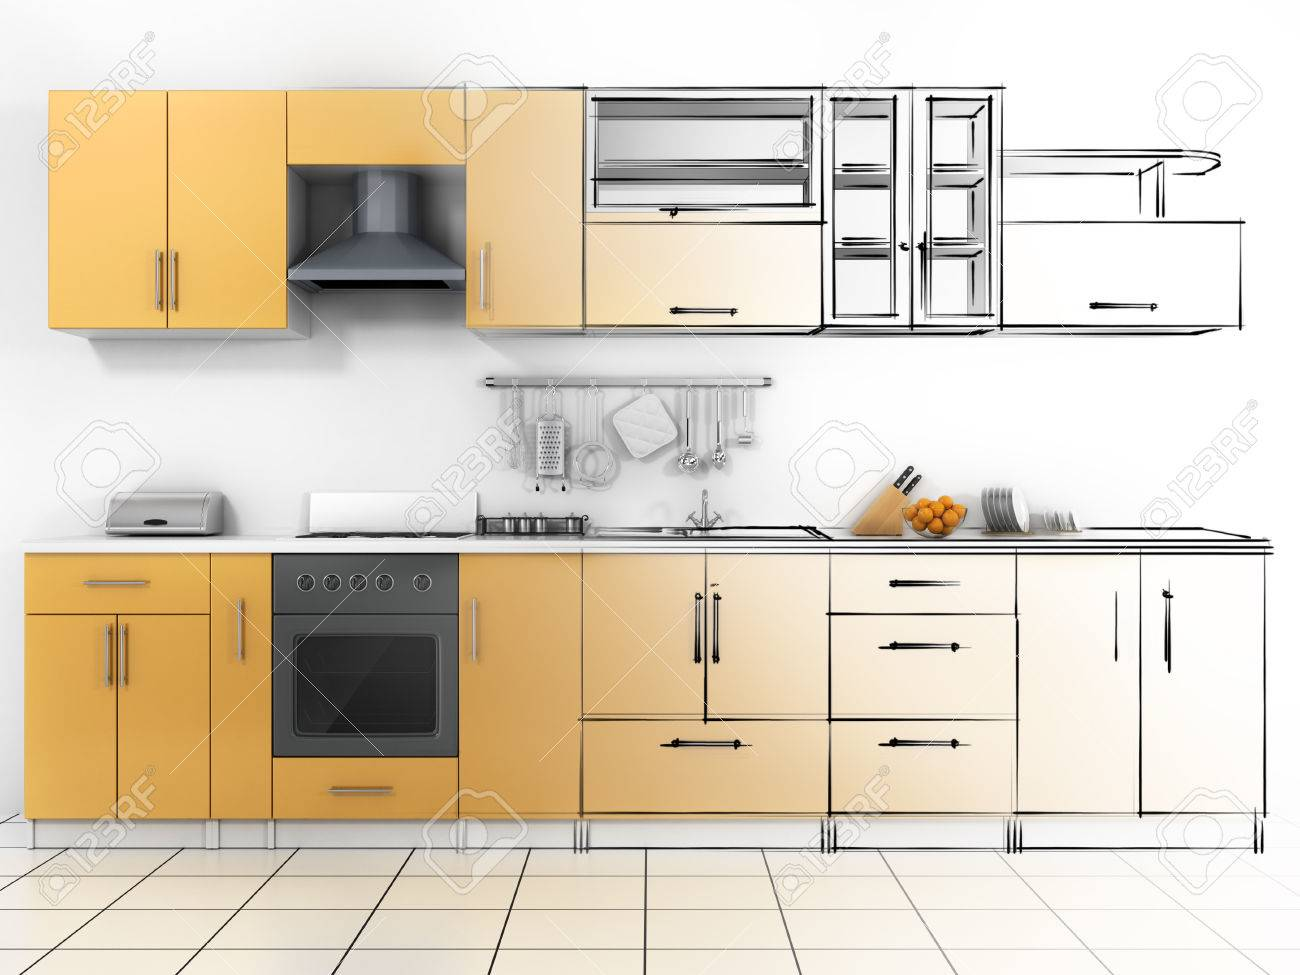 Abstract Sketch Design Of Interior Kitchen Wireframe Render Stock